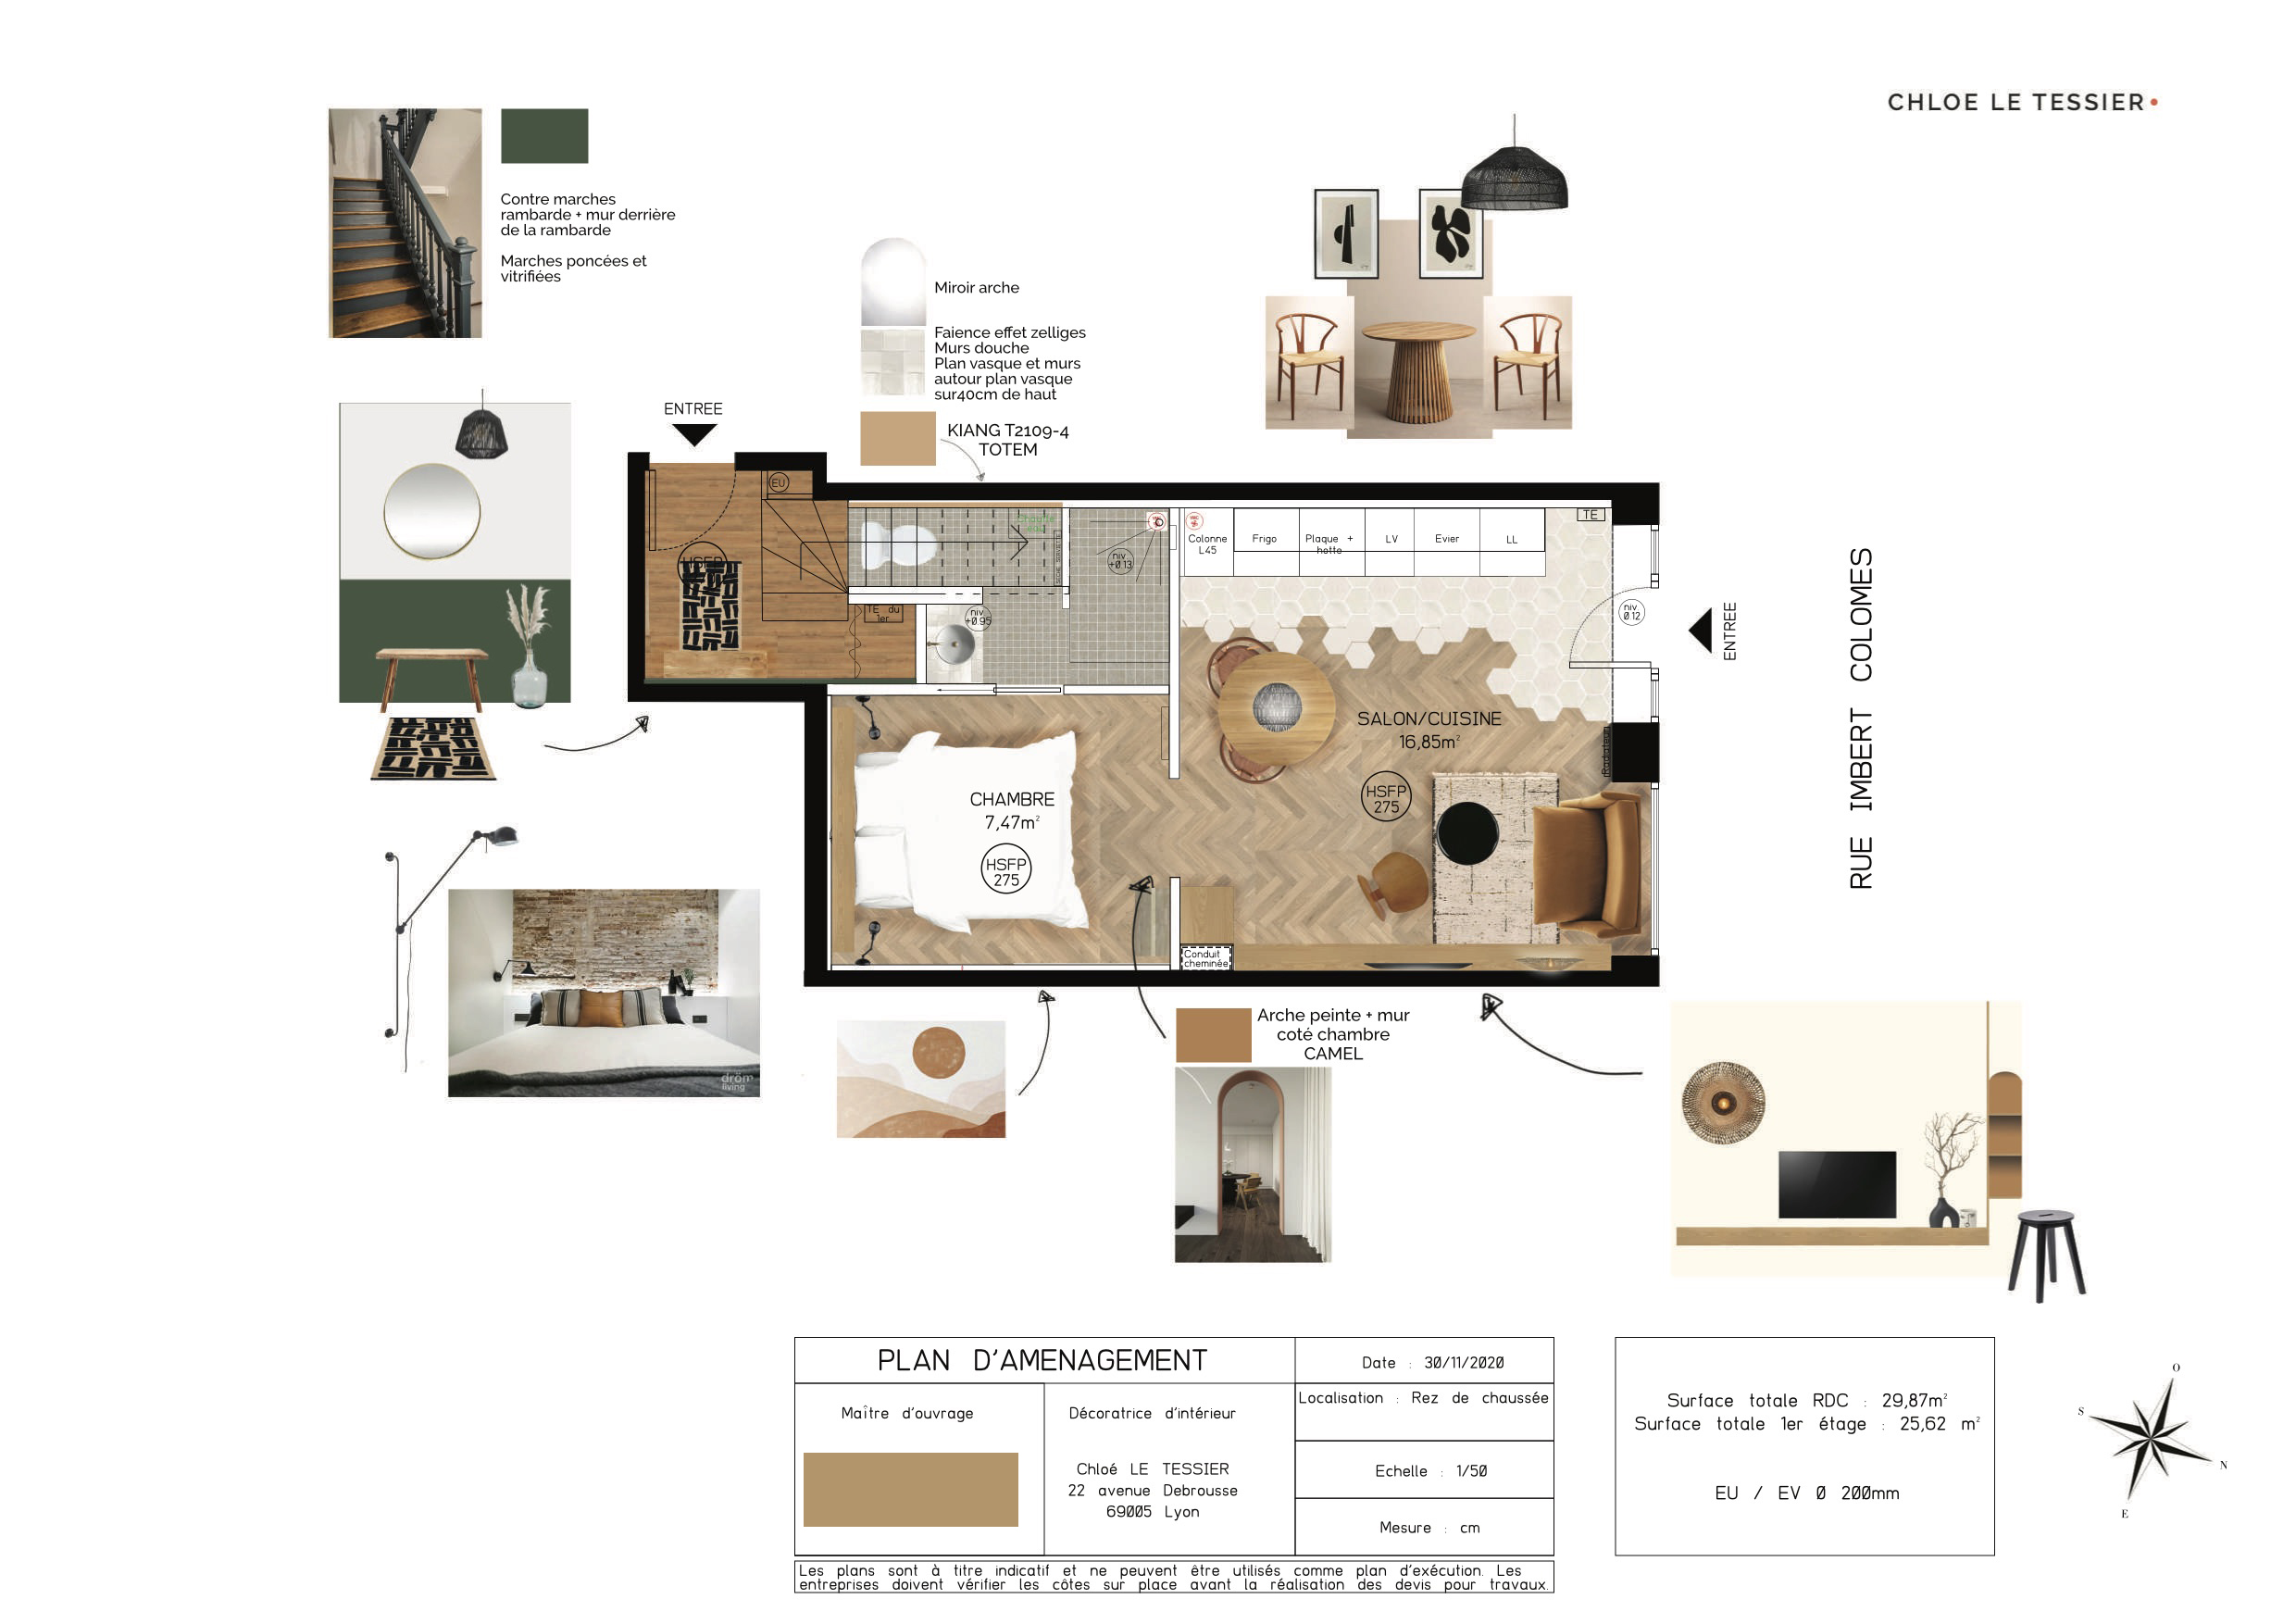 Plan d'amenagement renovation airbnb